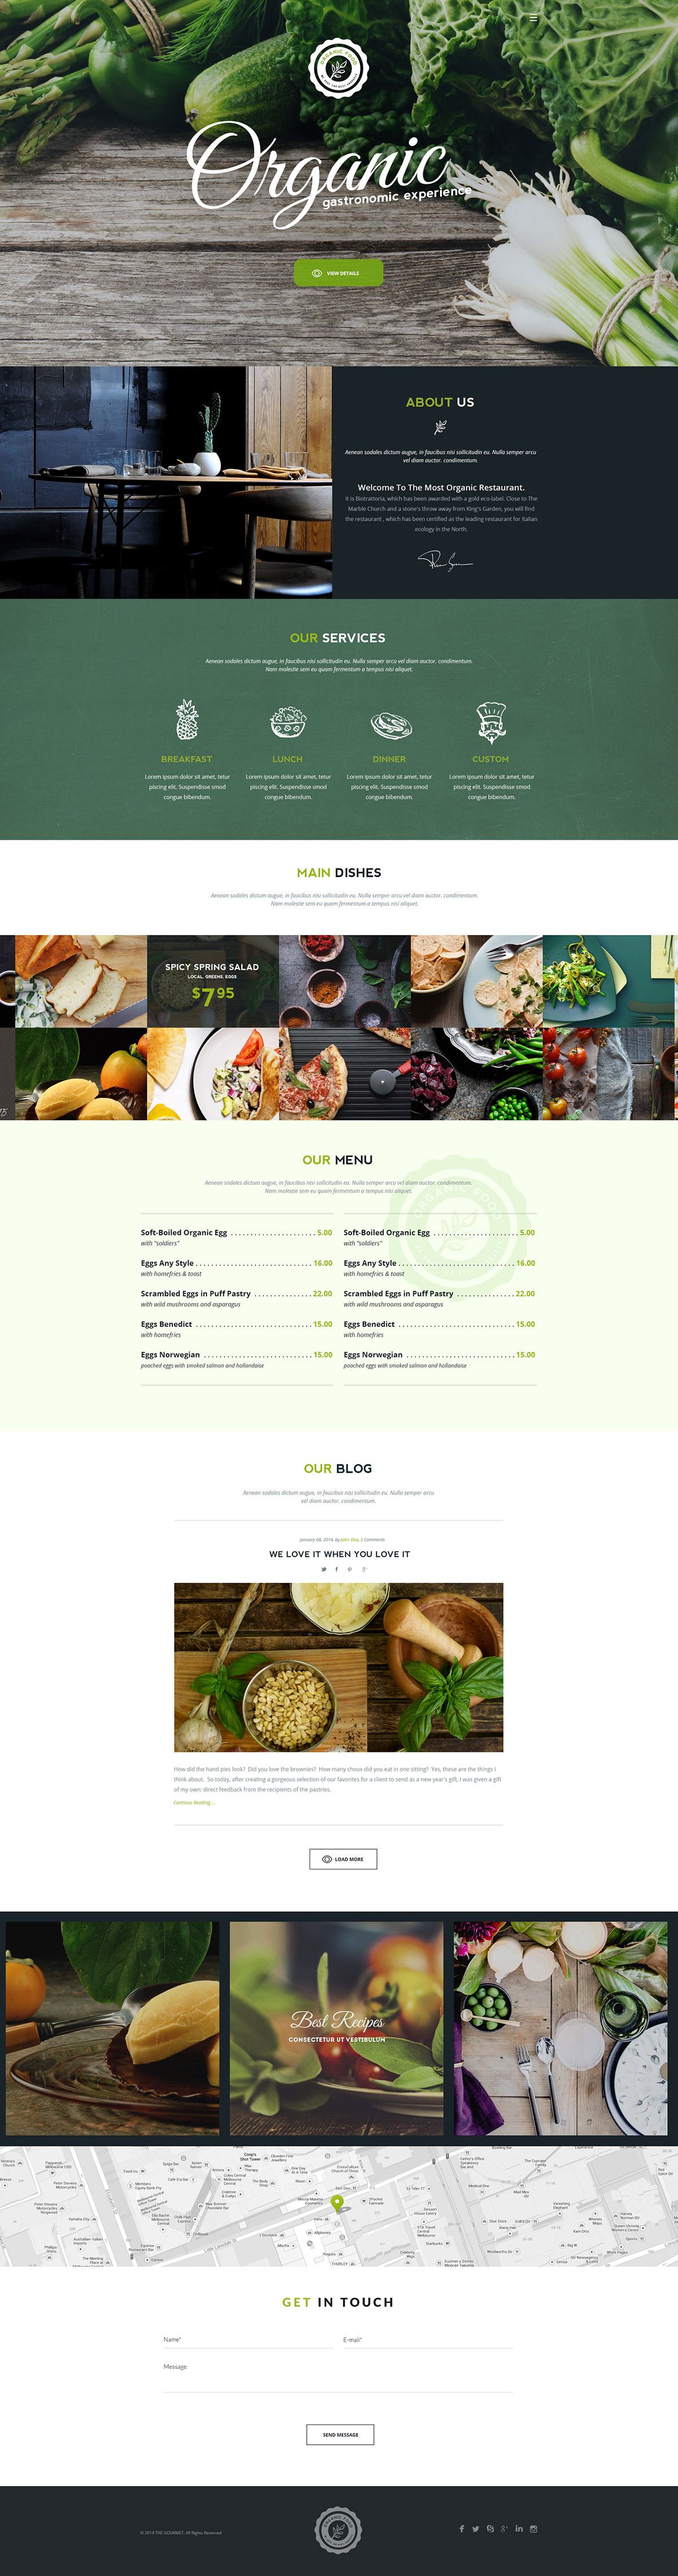 Organic – Food&Restaurant Theme on Behance